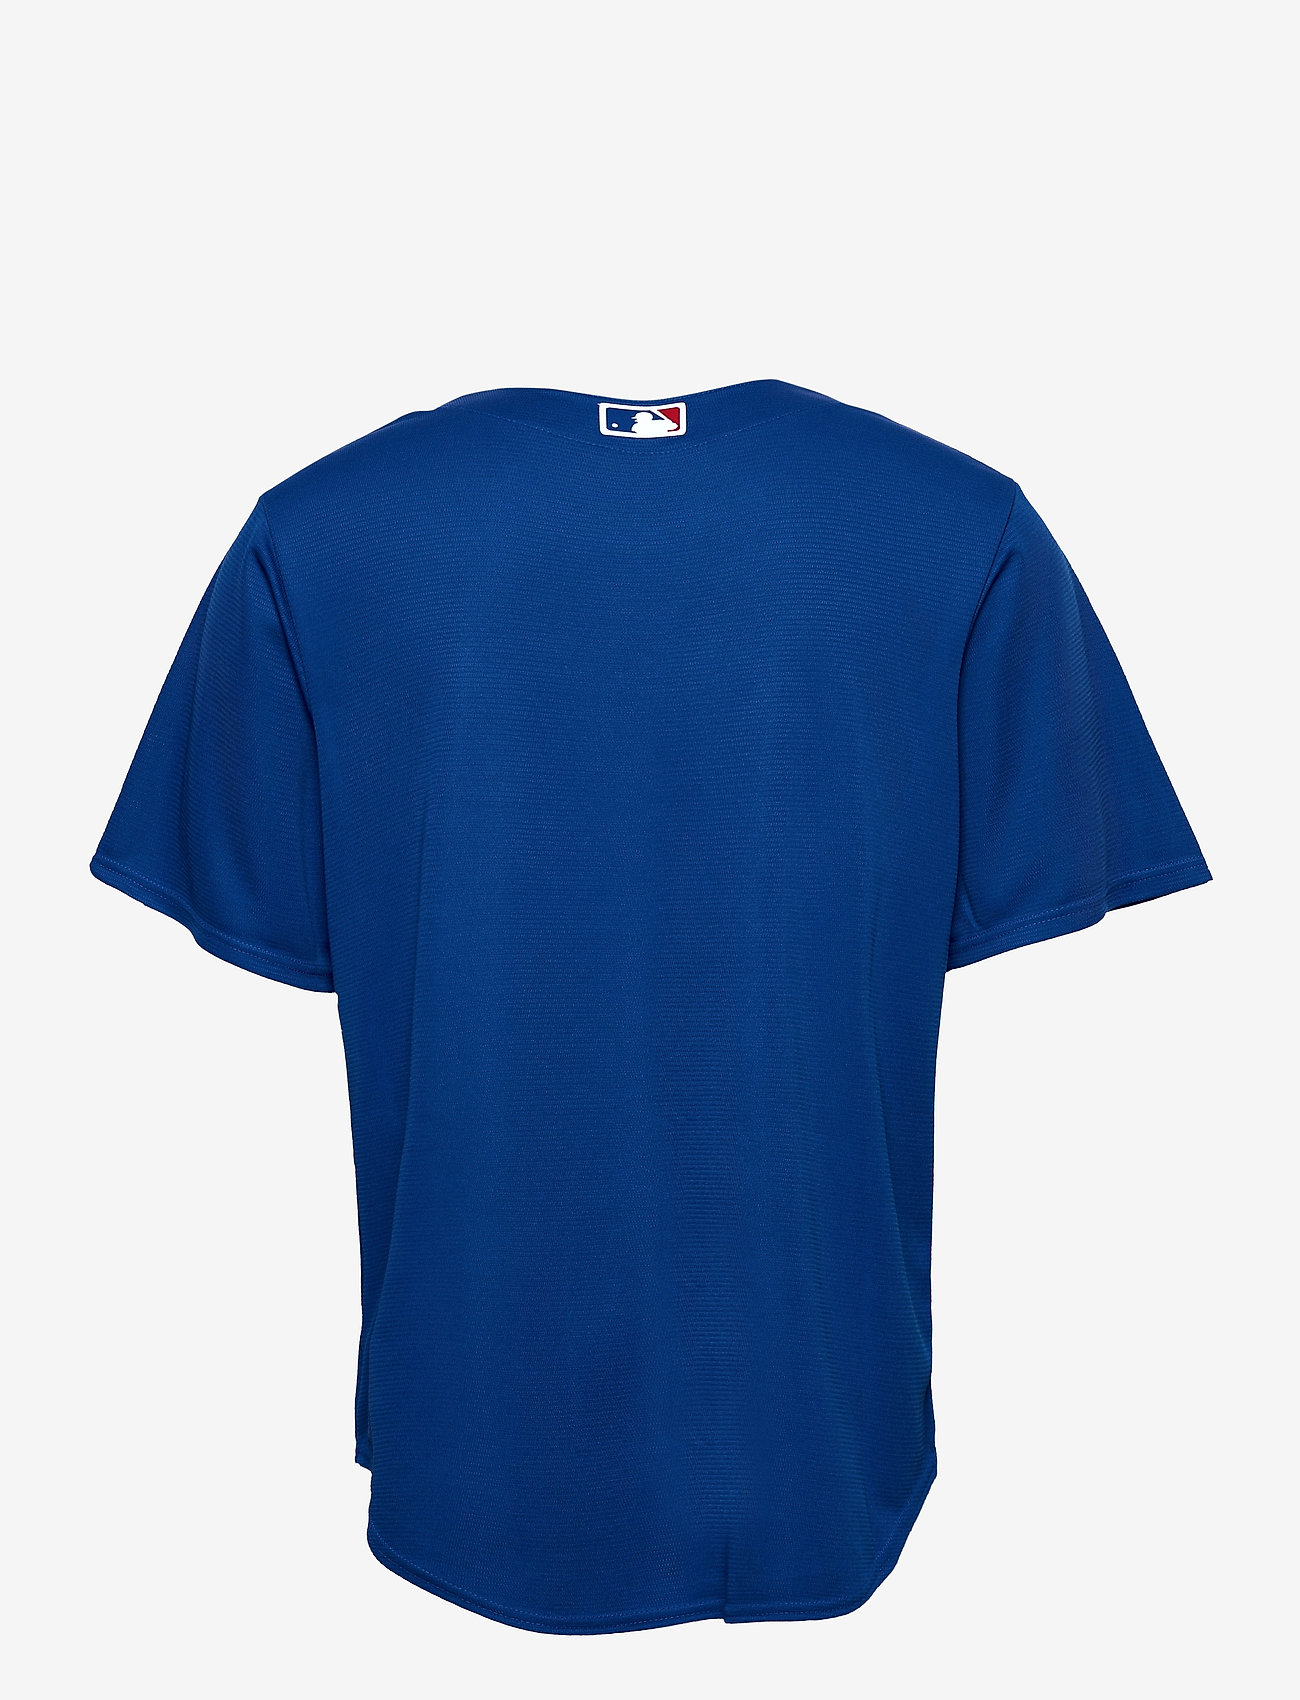 NIKE Fan Gear - Chicago Cubs Nike Official Replica Alternate Jersey - t-shirts - pro royal - 1